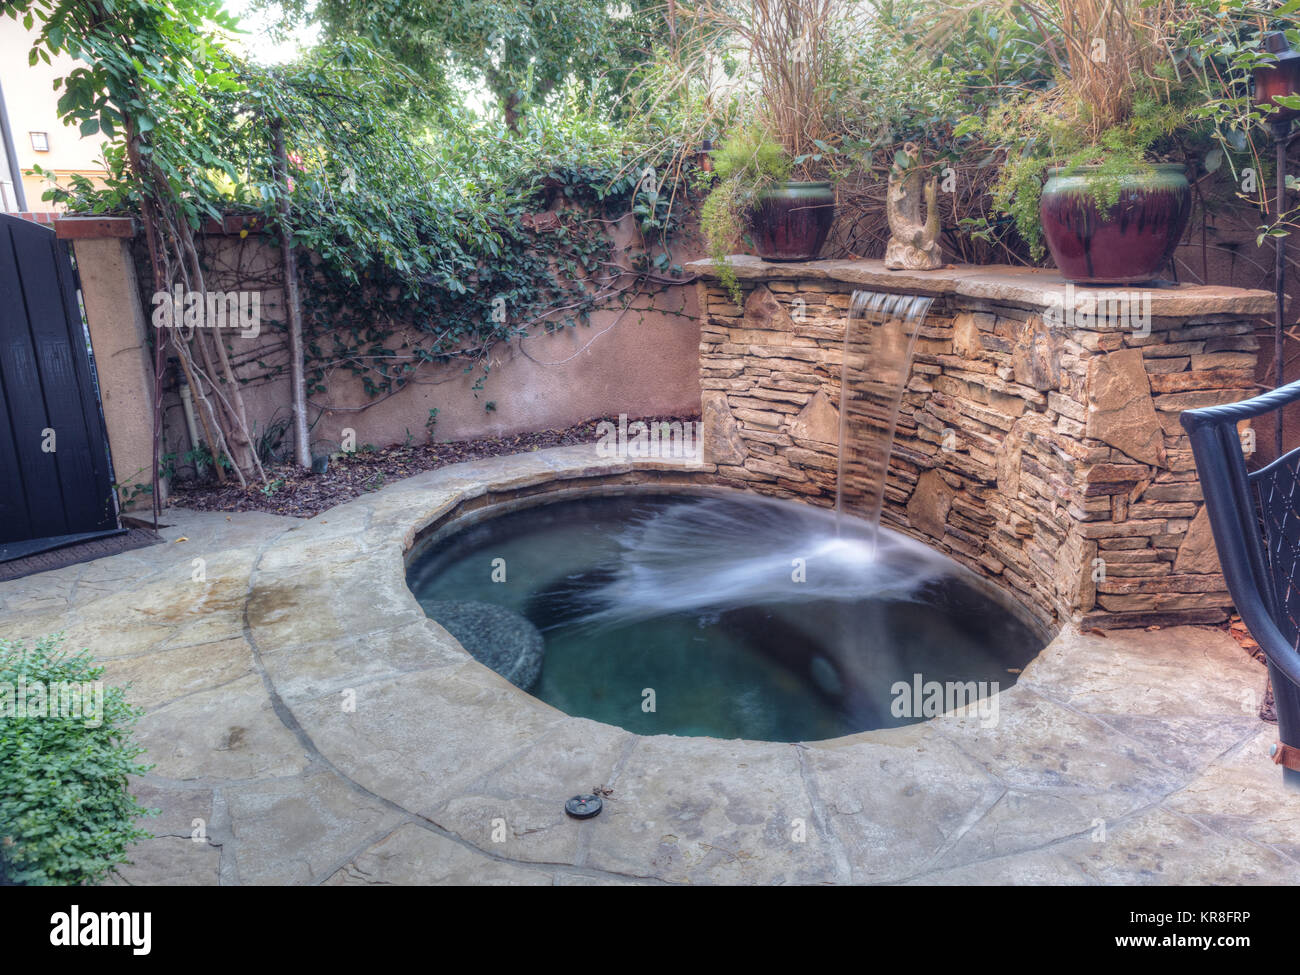 Oval hot tub spa with waterfall Stock Photo, Royalty Free Image ...